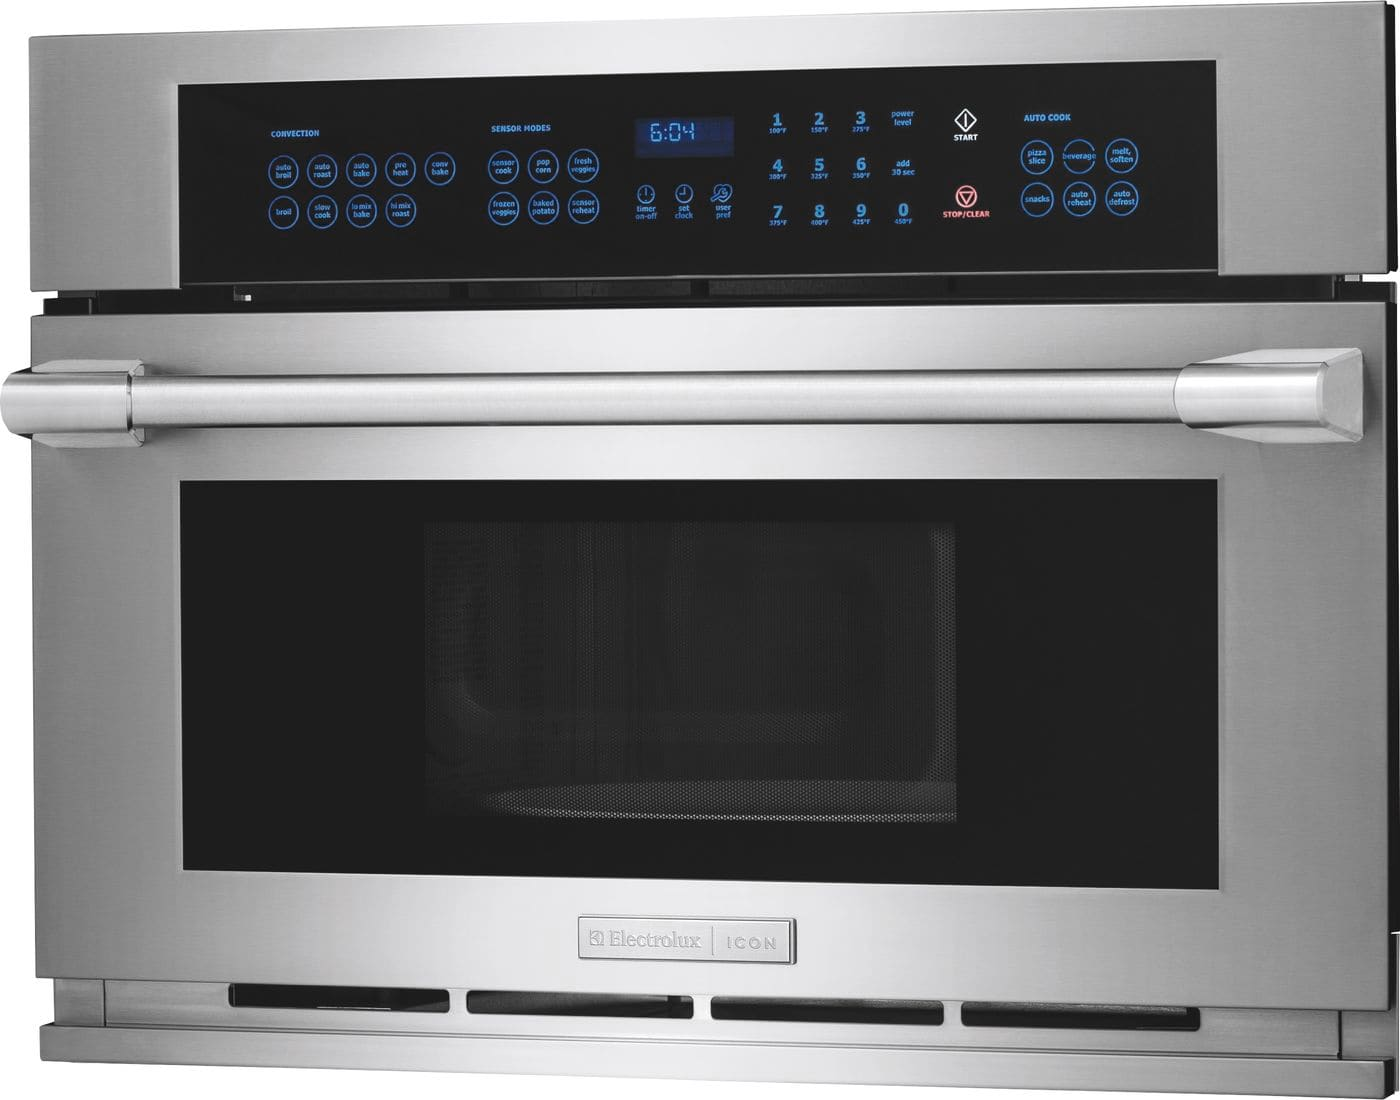 Model: E30MO75HPS | Electrolux ICON Electrolux ICON® Built-In Microwave with Drop-Down Door